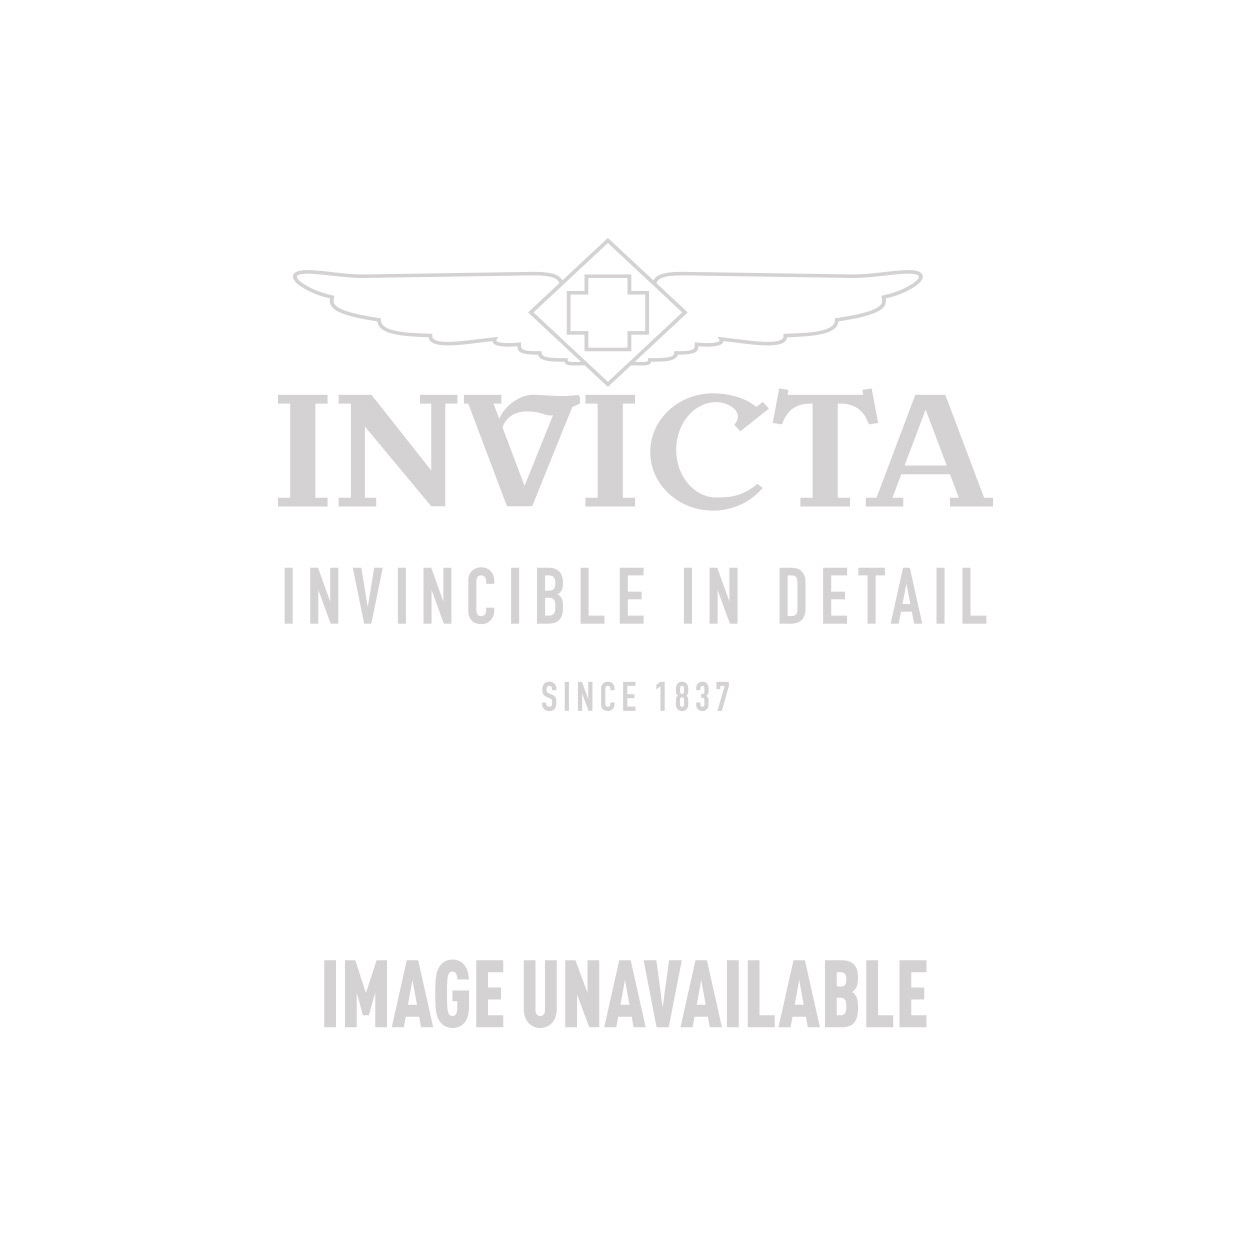 Invicta Specialty Mechanical Watch - Gold case with Light Brown tone Leather band - Model 17197